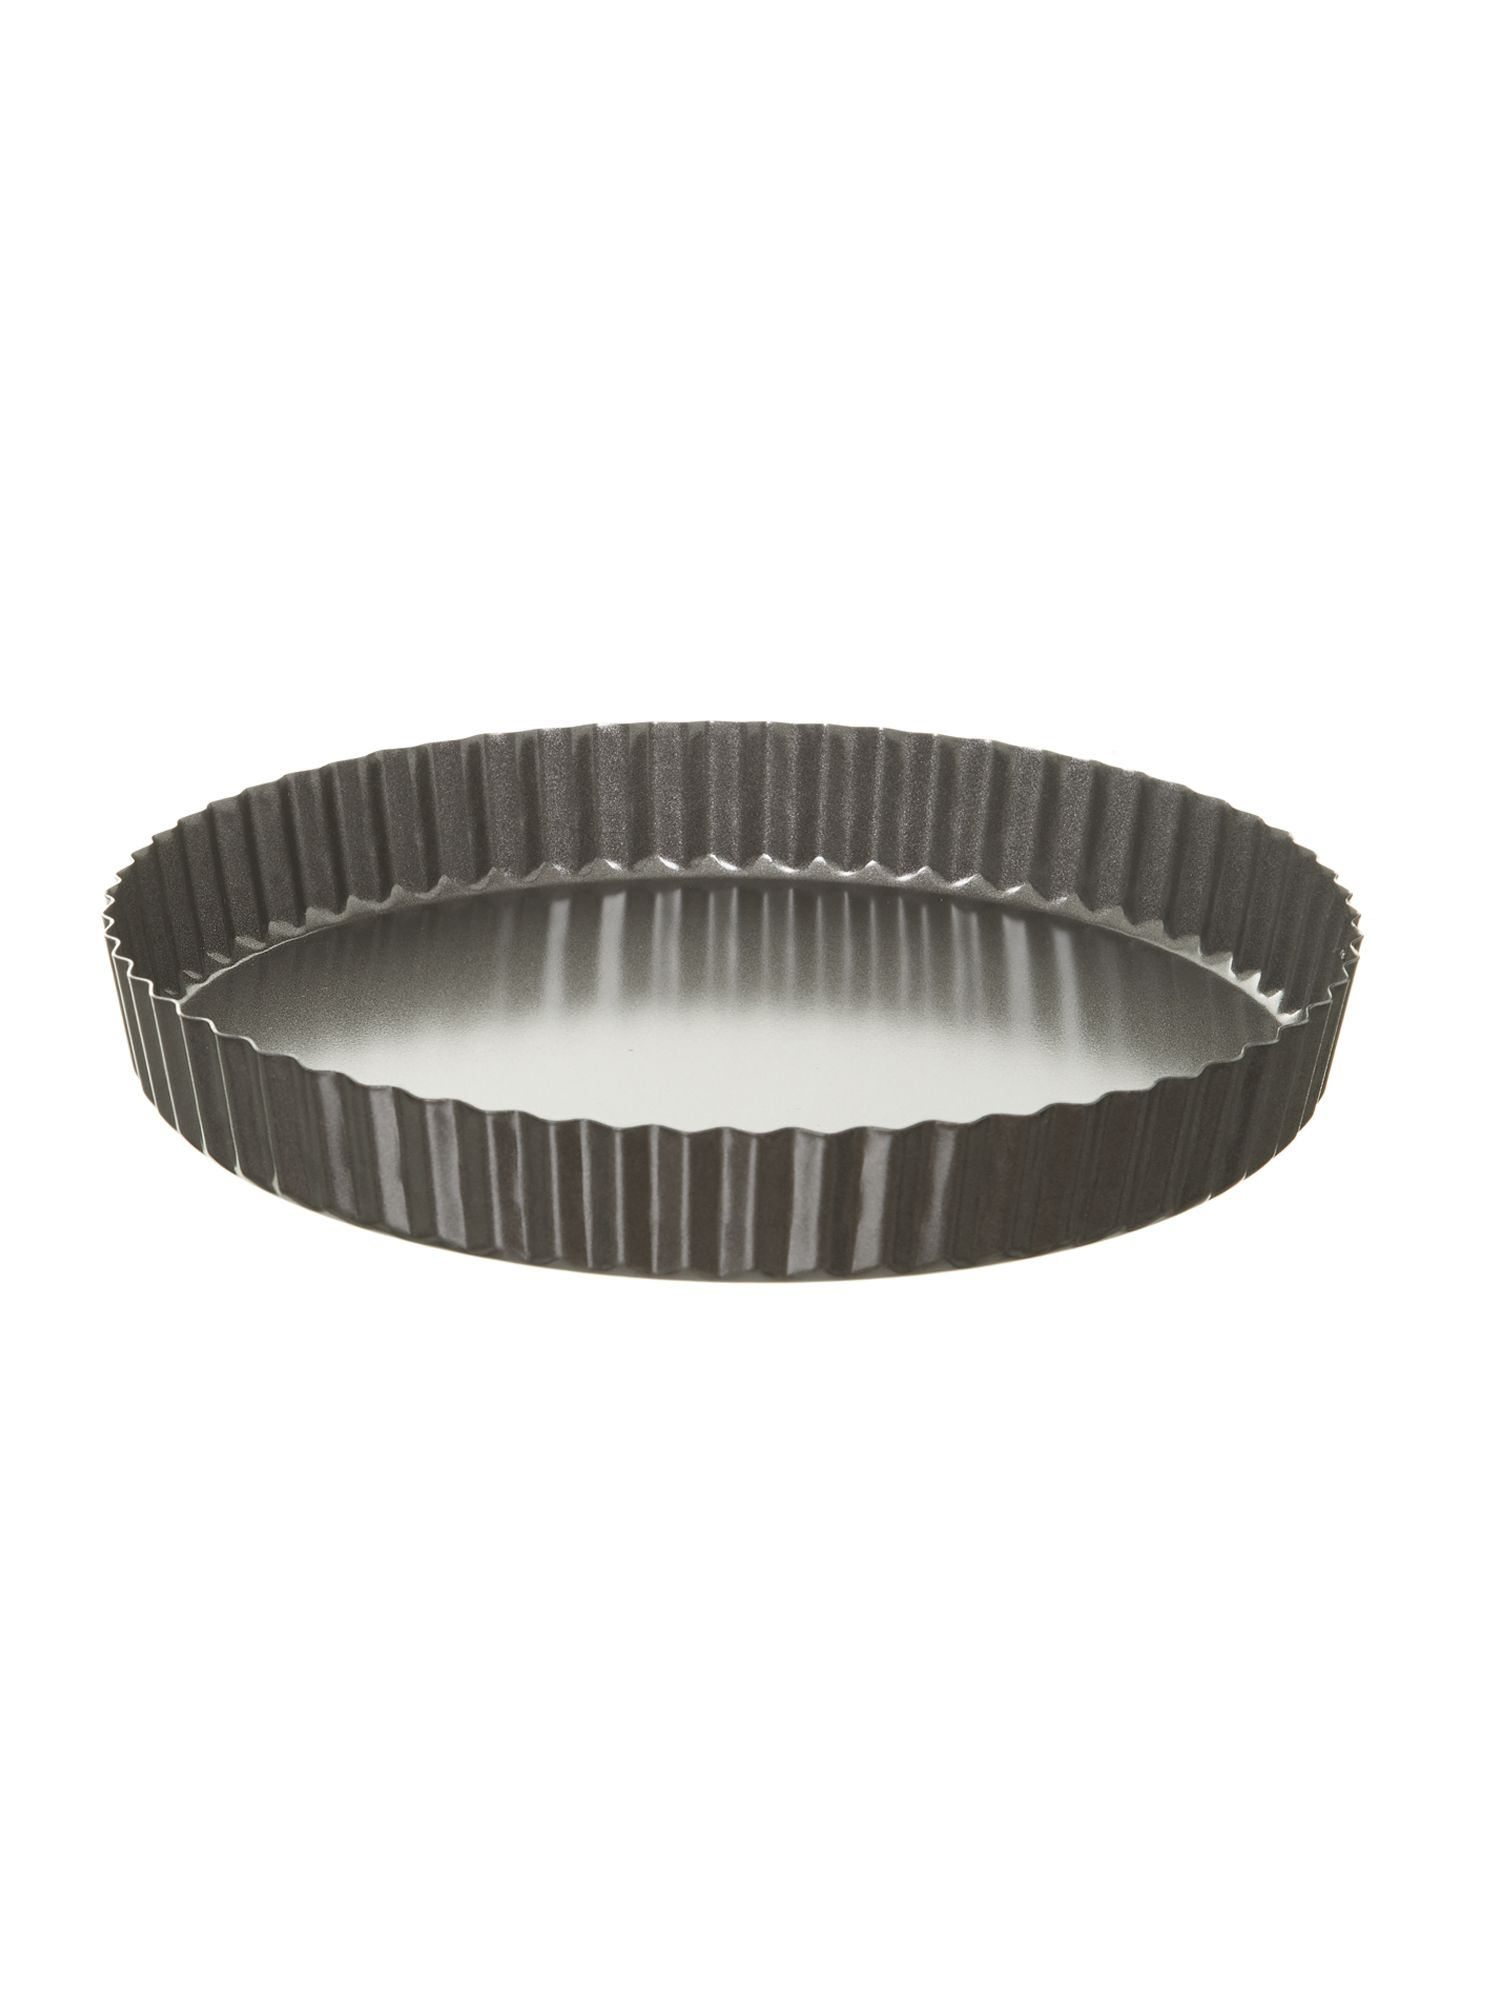 Flan pan, 23cm (fixed base)